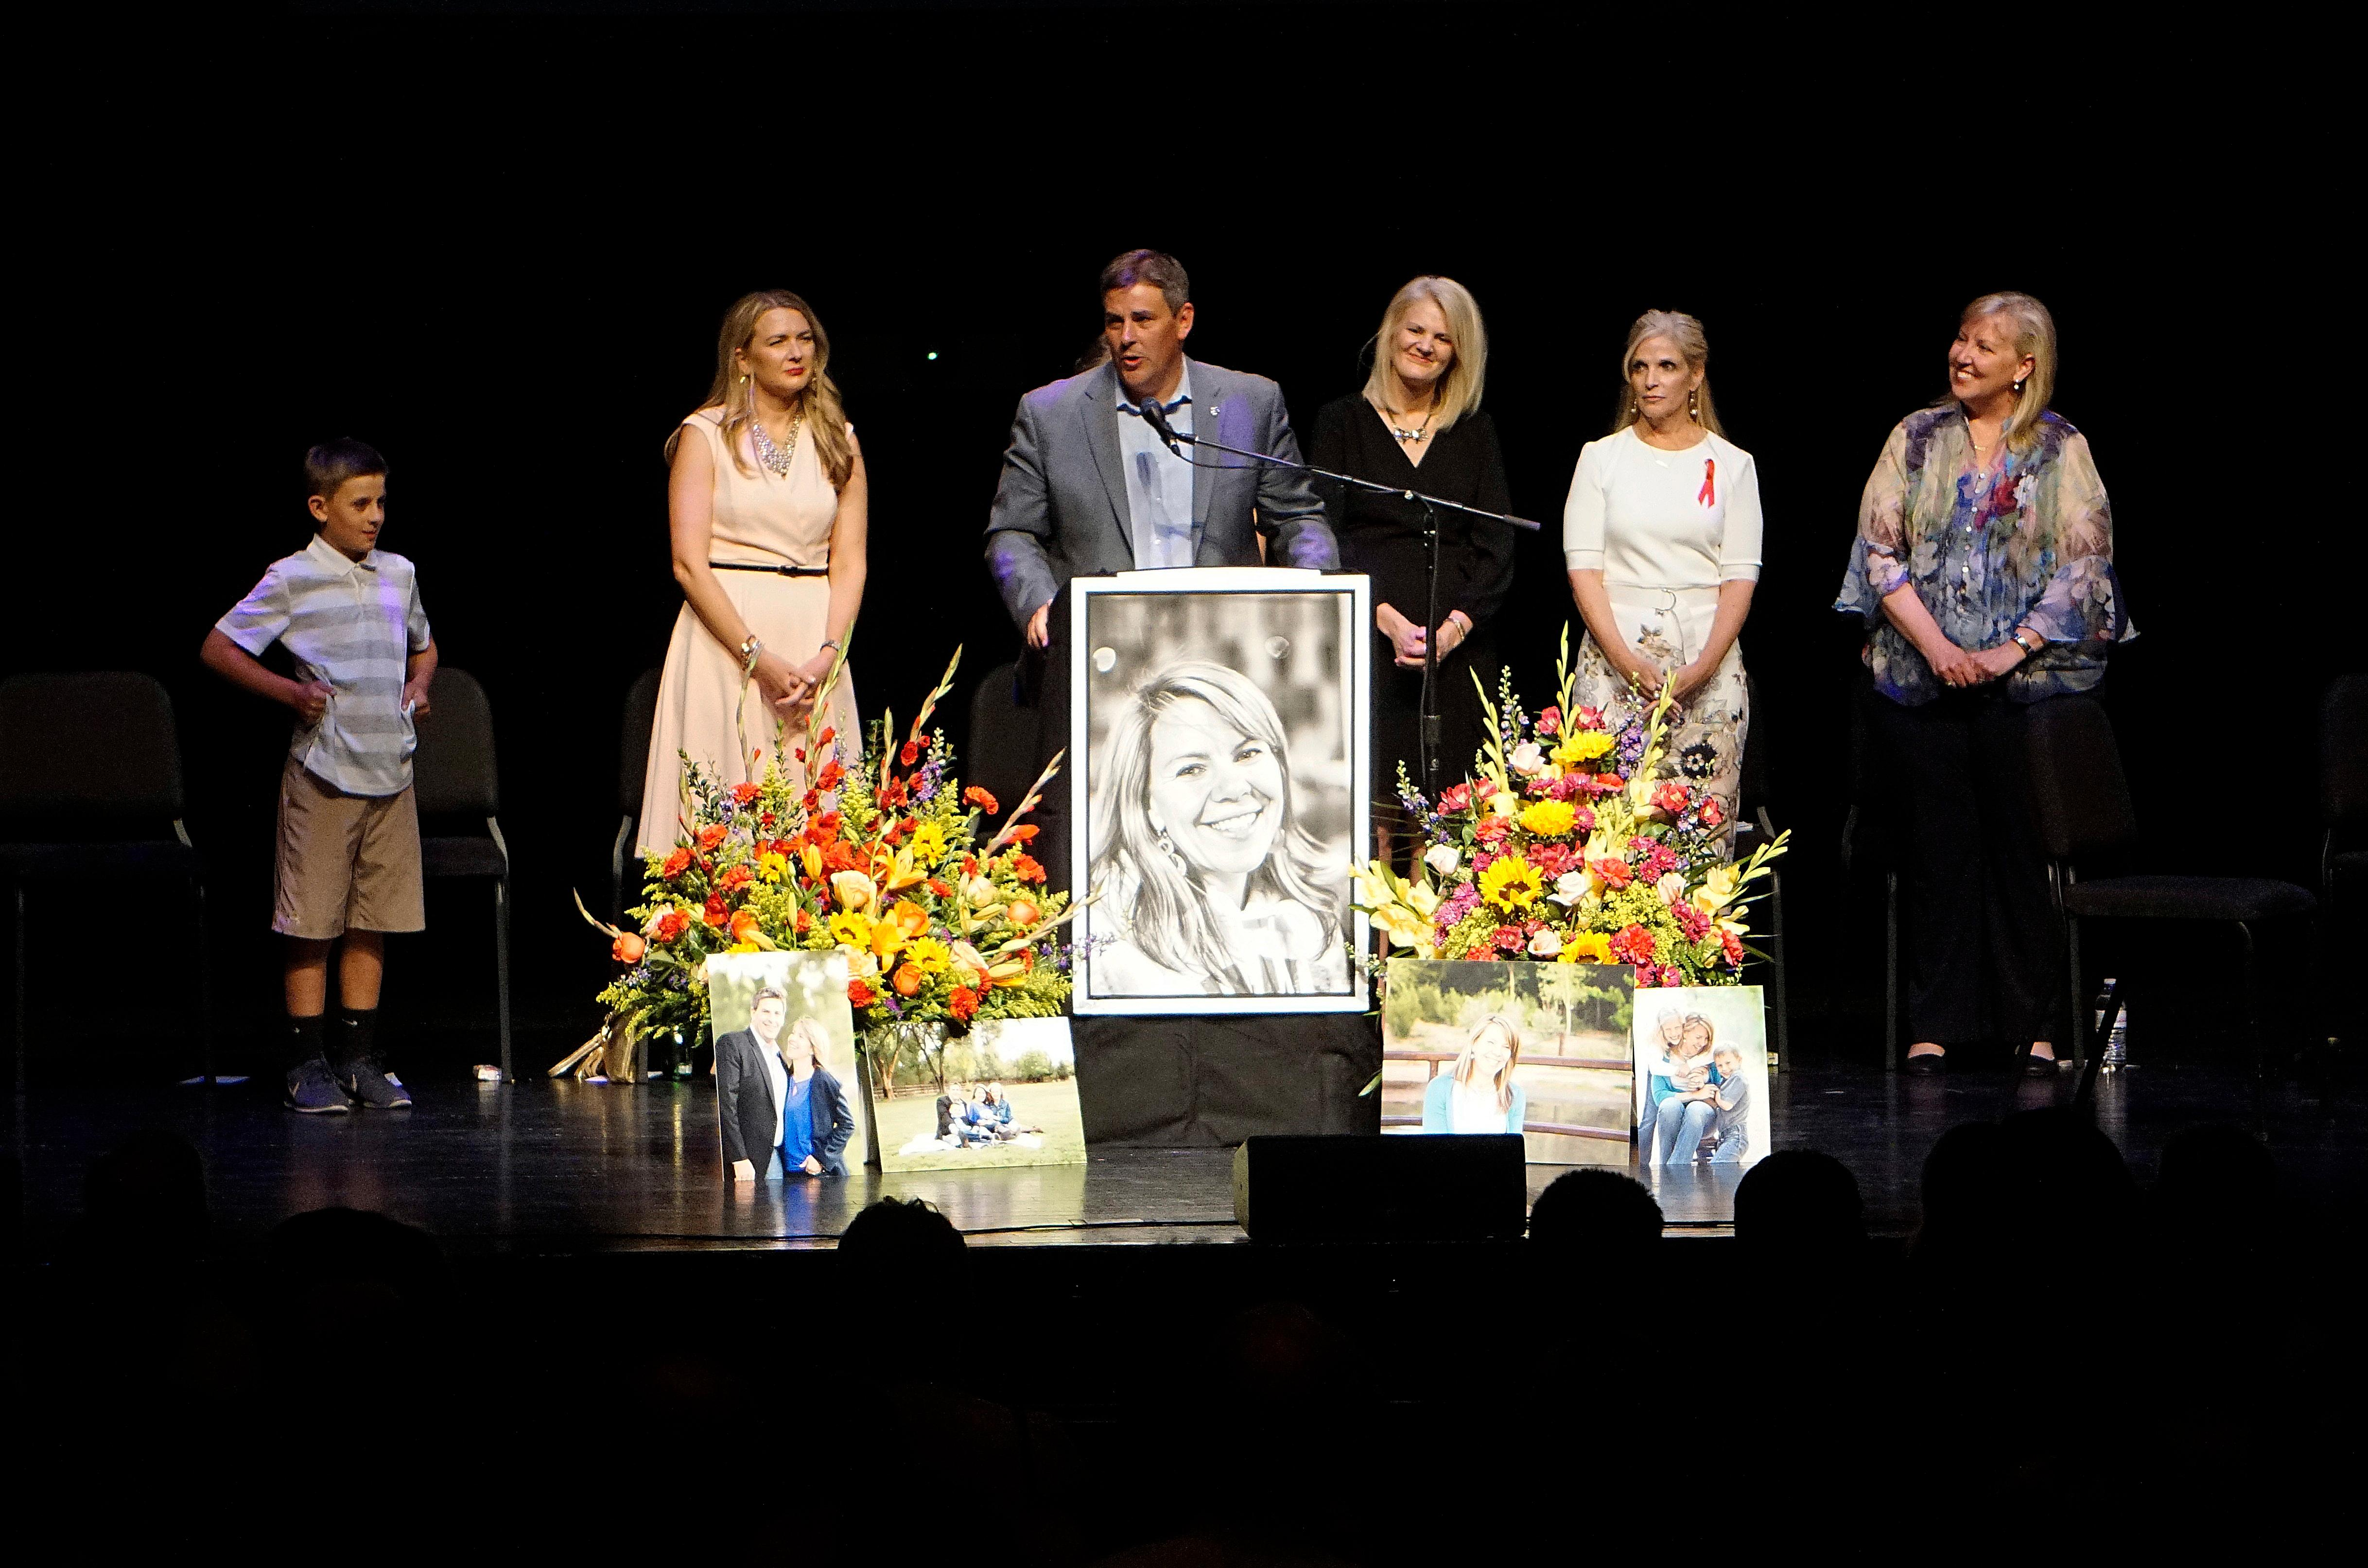 Michael Riordan, center, is joined by family members at a memorial service for his wife Jennifer Riordan, who died on Tuesday in the Southwest Airlines flight 1380 accident, at Popejoy Hall on the campus of the University of New Mexico in Albuquerque, N.M., Sunday, April 22, 2018. (Adolphe Pierre-Louis/The Albuquerque Journal via AP)